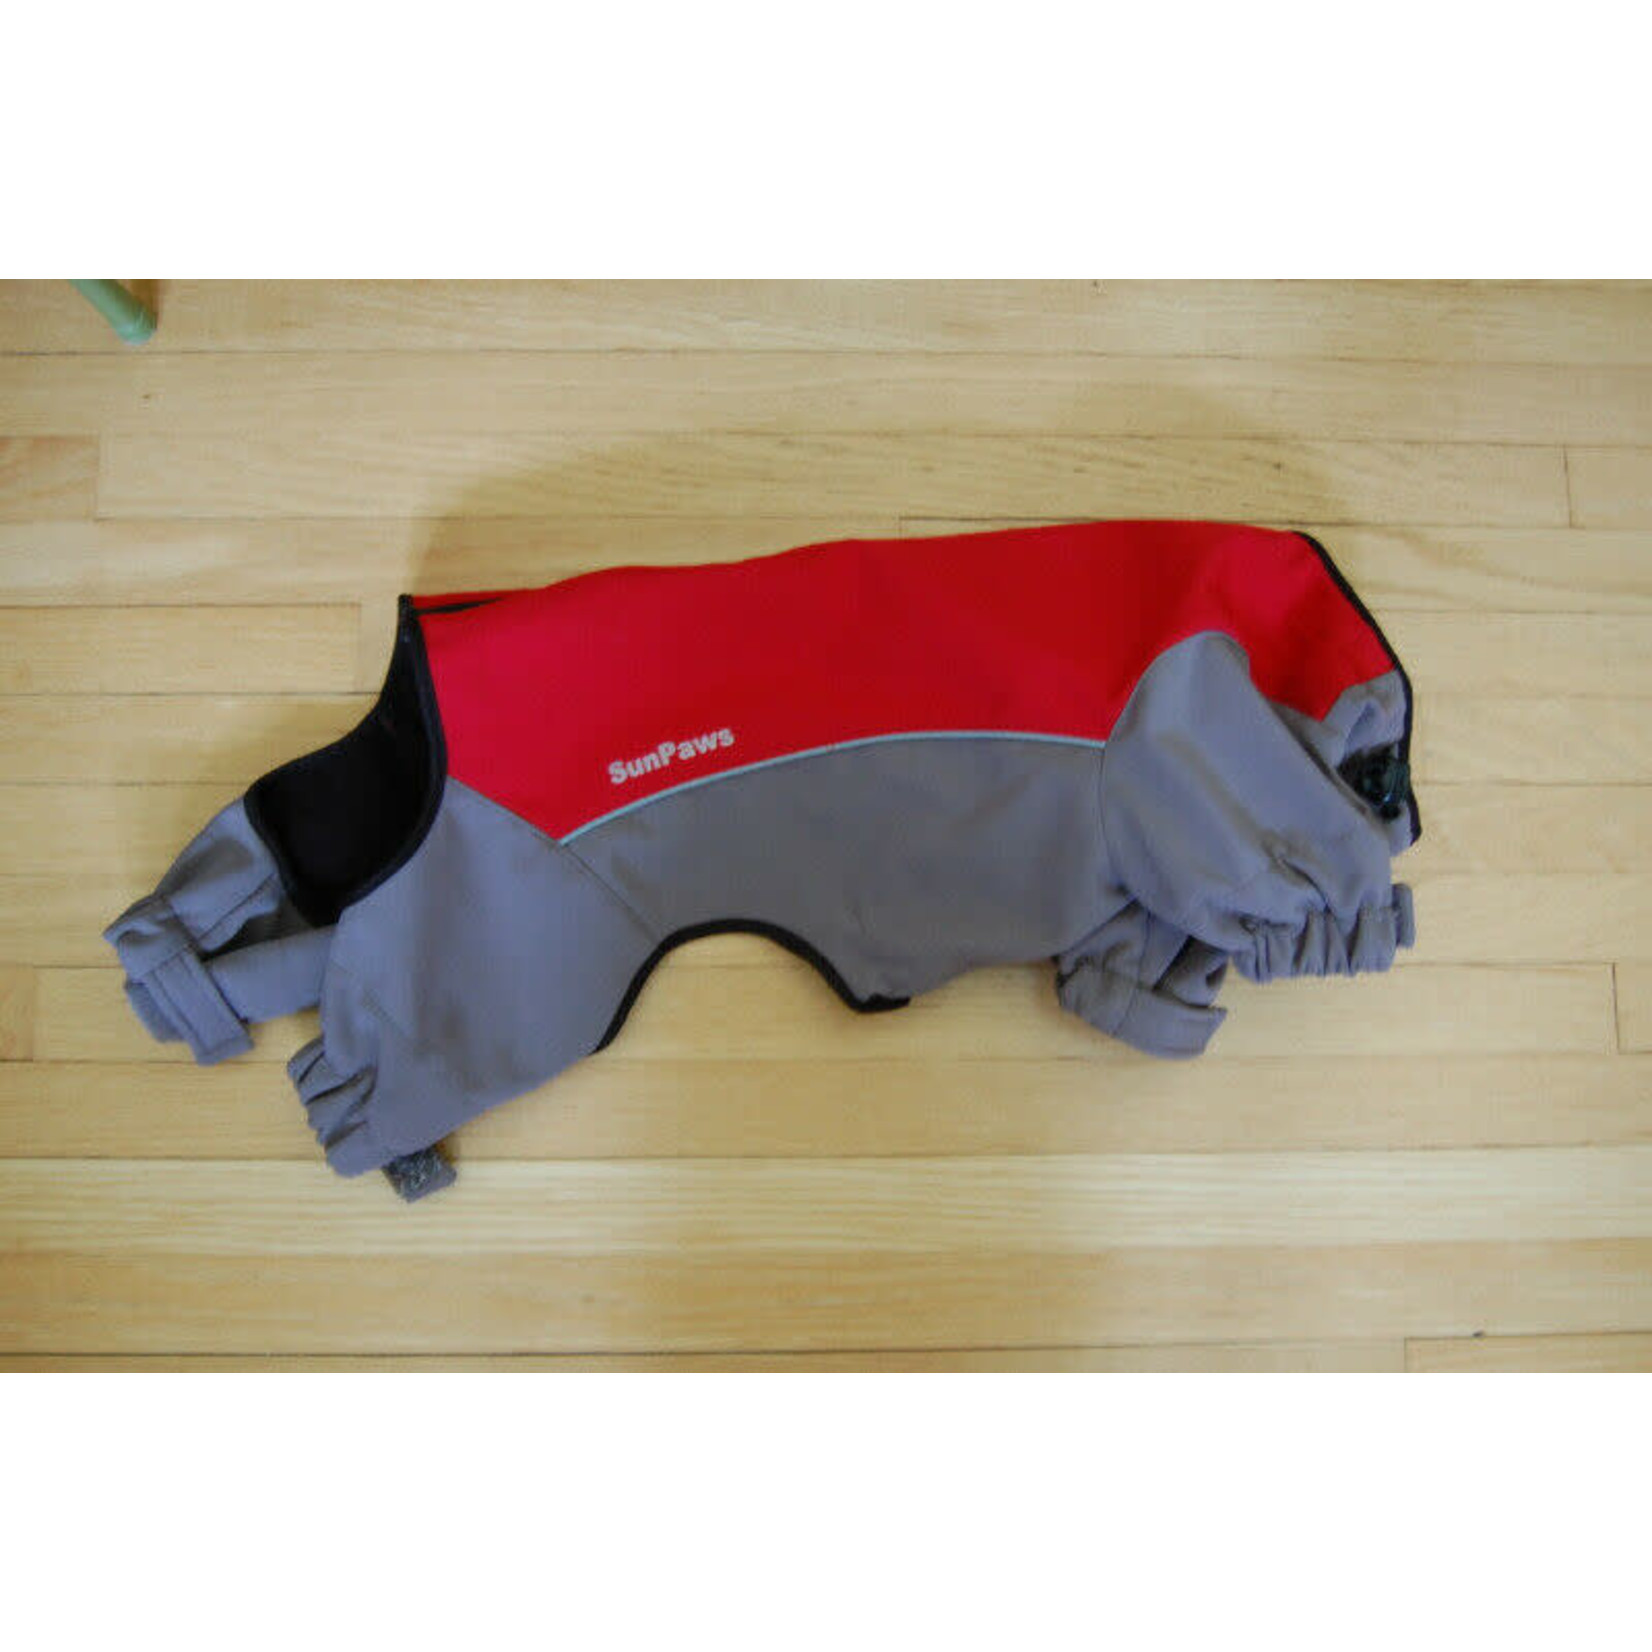 Sun Paws Sun Paws Soft Shell Overall Red M